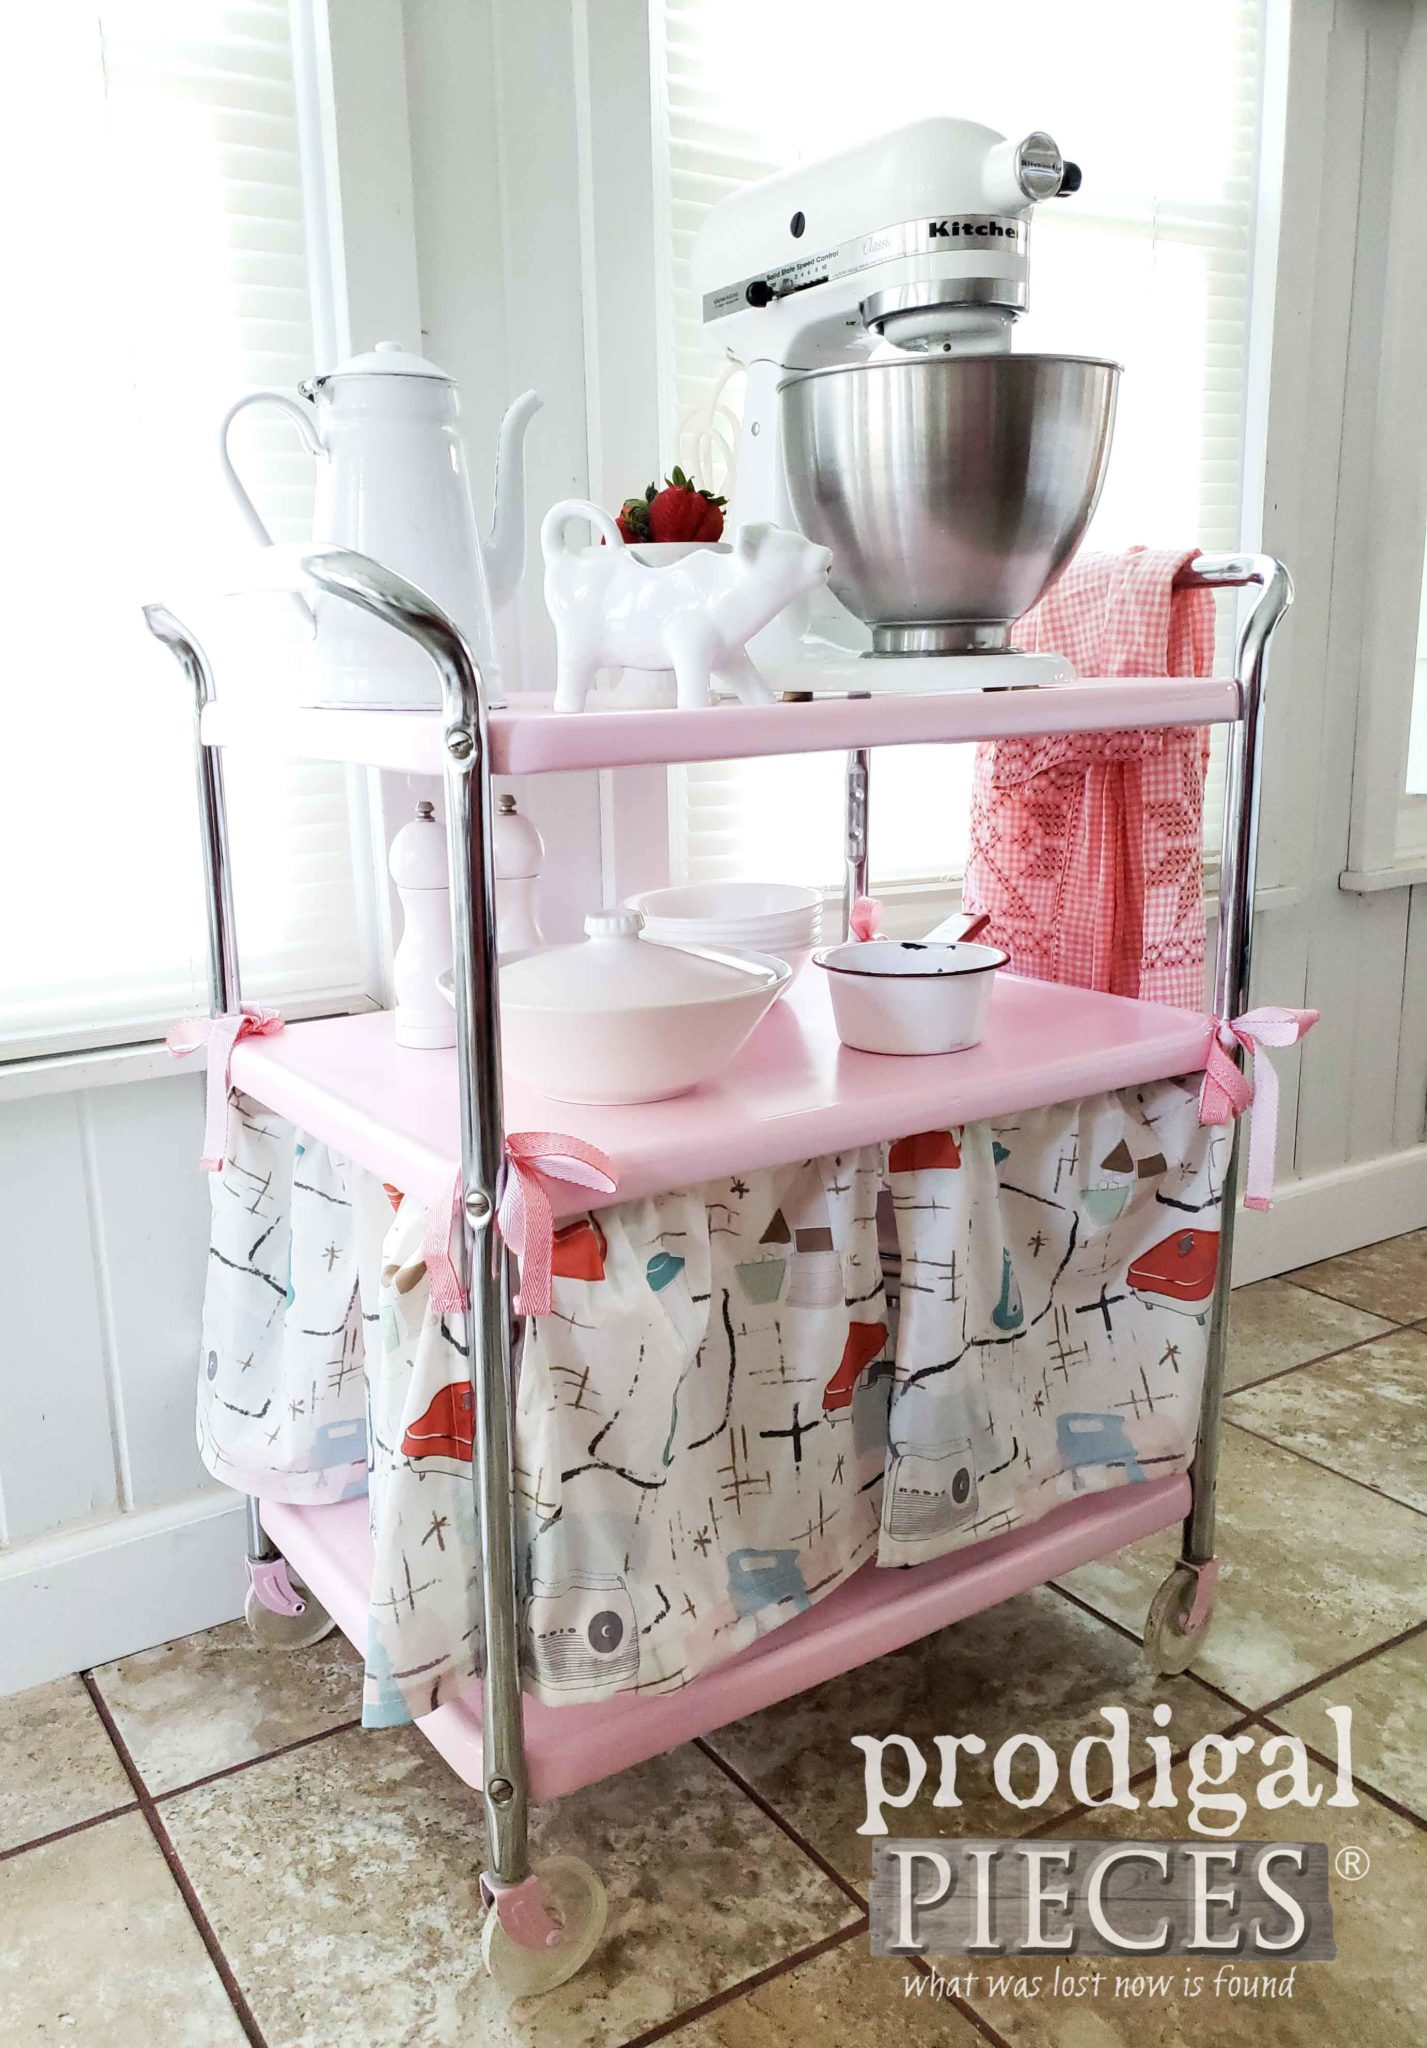 Retro Cosco Kitchen Cart Refinished into a Candy Pink with Dust Ruffle Skirt by Larissa of Prodigal Pieces | prodigalpieces.com #prodigalpieces #furniture #home #homedecor #diy